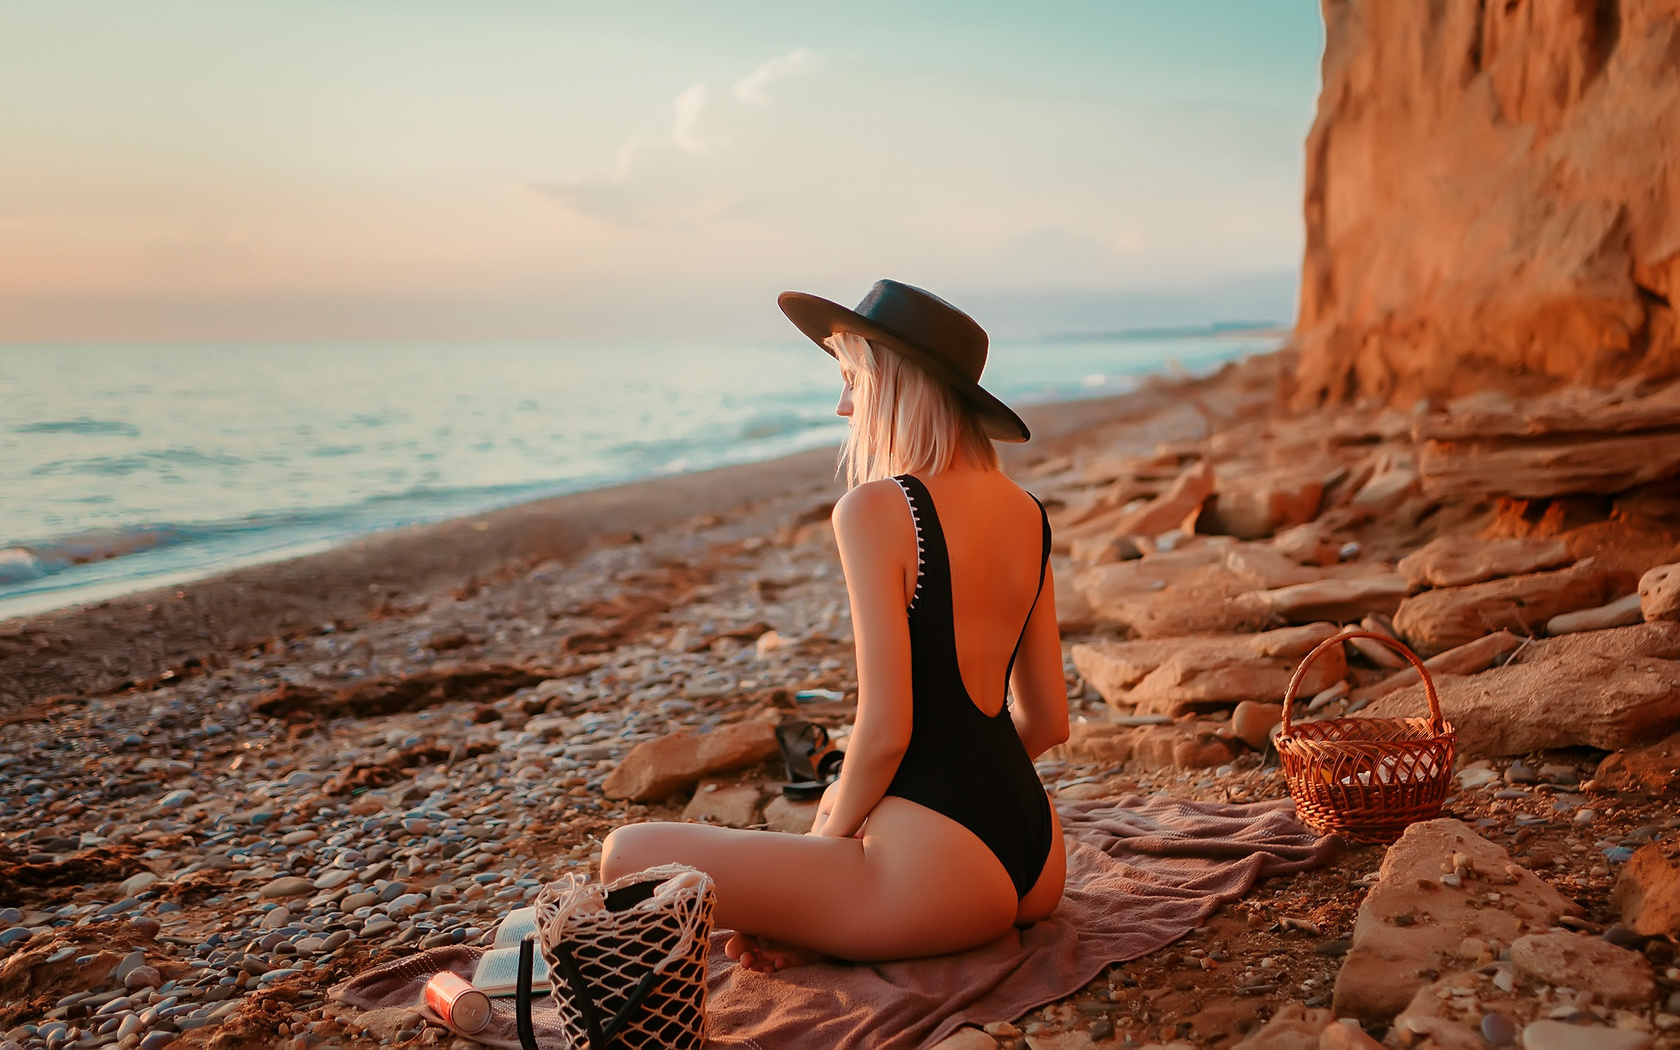 women, blonde, brunette, one-piece swimsuit, ass, sunset, sea, beach, women outdoors, black swimsuit, coca-cola, hat, books, sitting